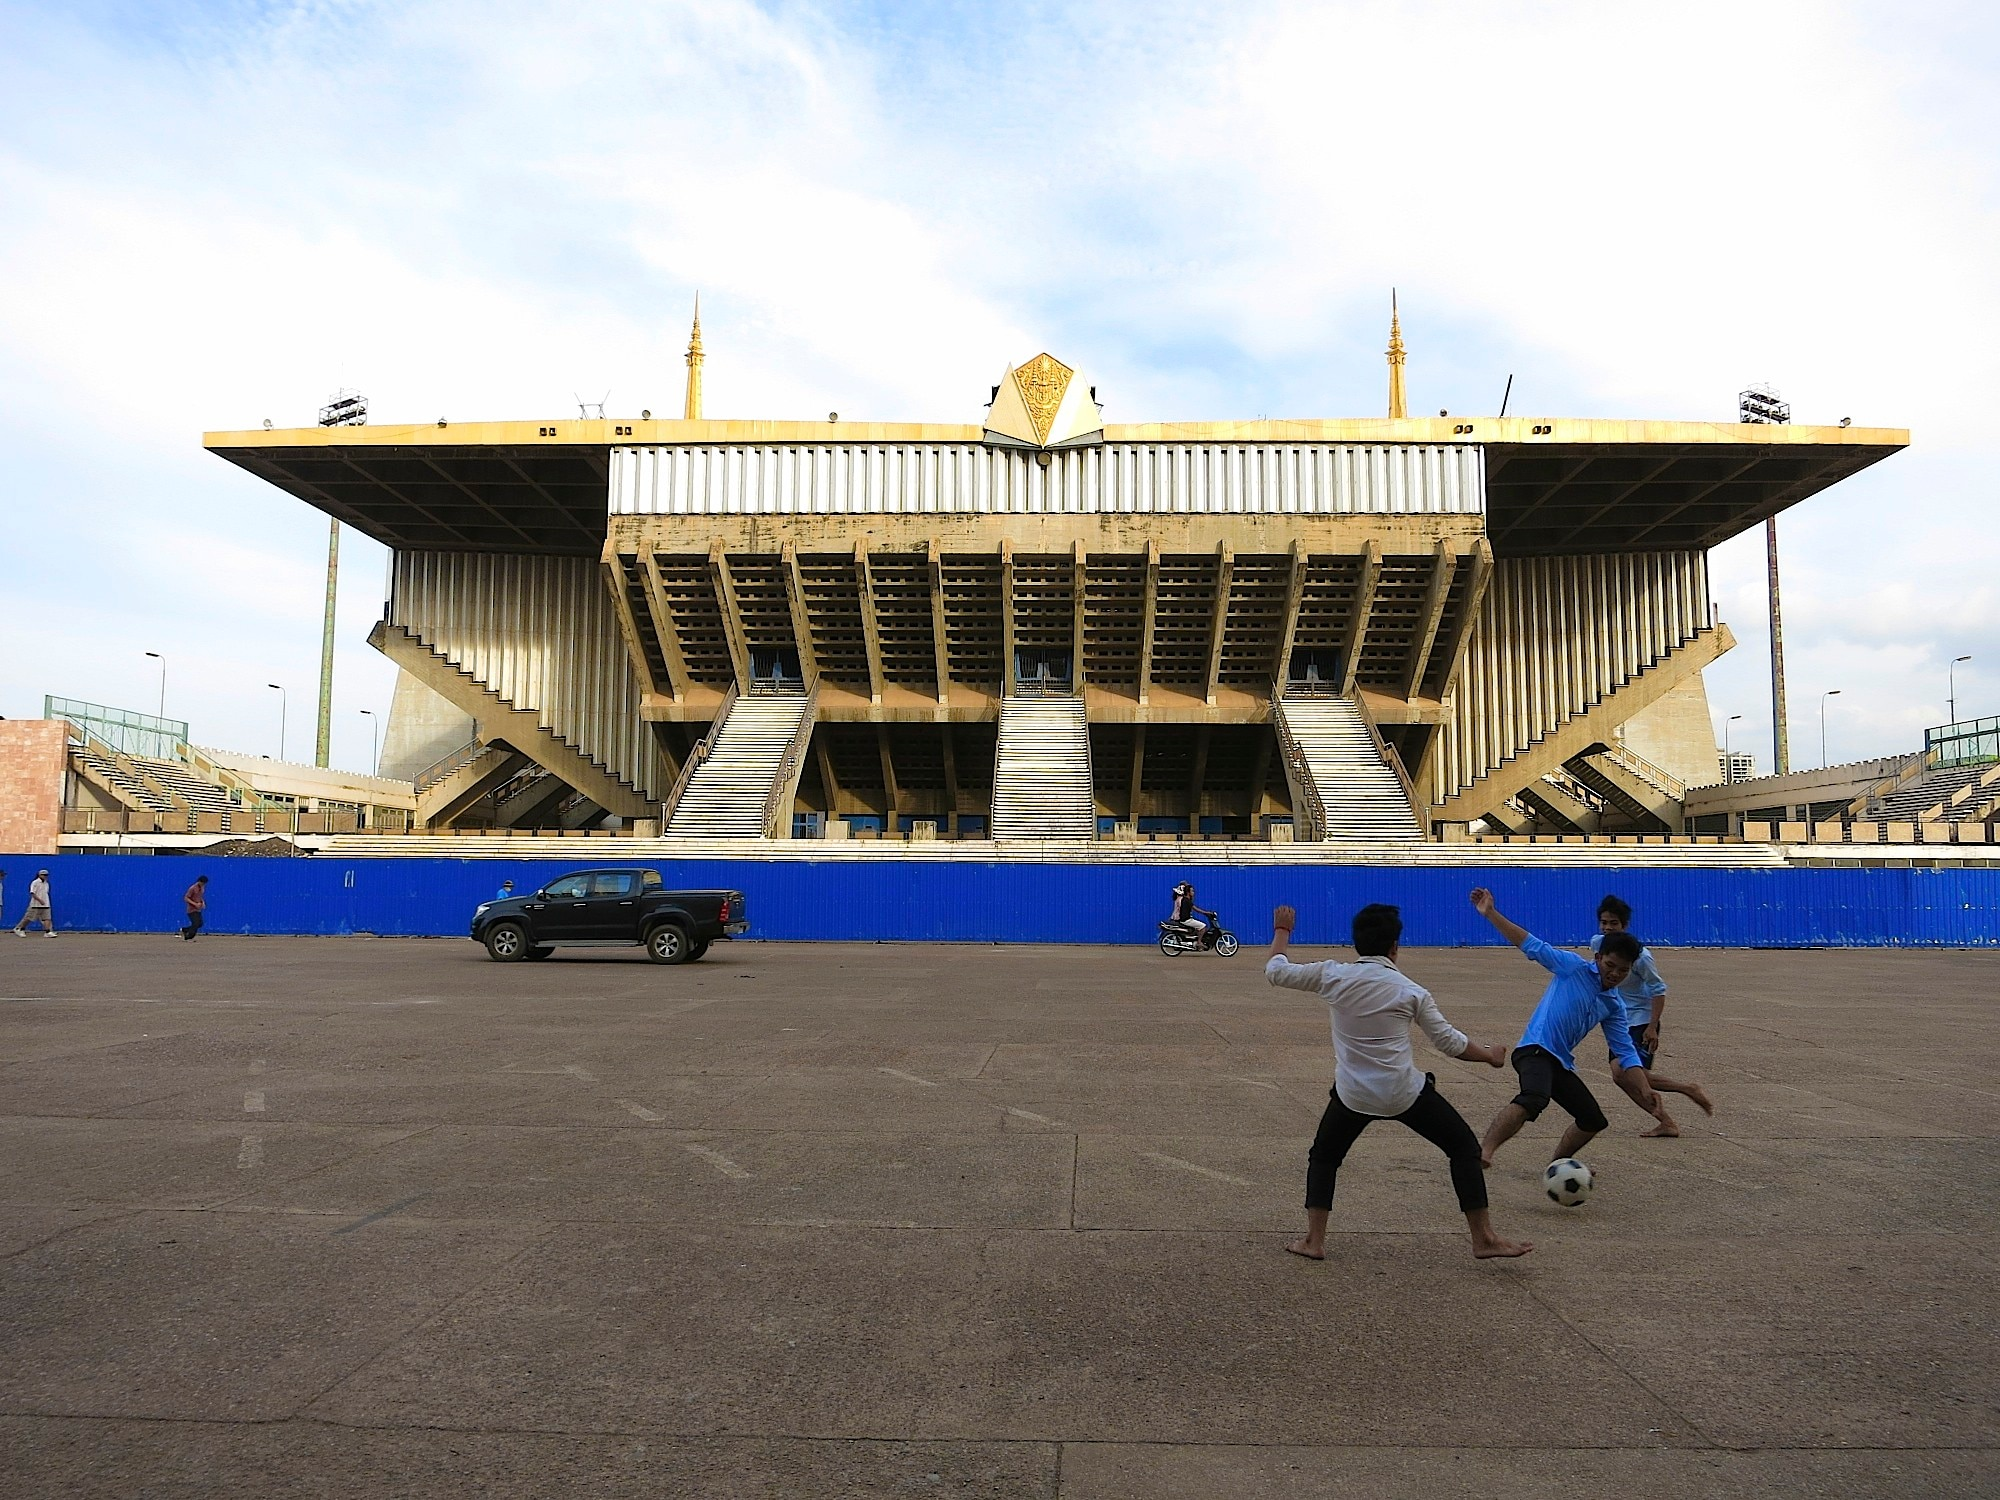 Over the past several years, citizens of Phnom Penh have begun using the Olympic stadium for their own sports and recreational activities. Although many fear it will be destroyed, a government spokesperson insists that's not the case.